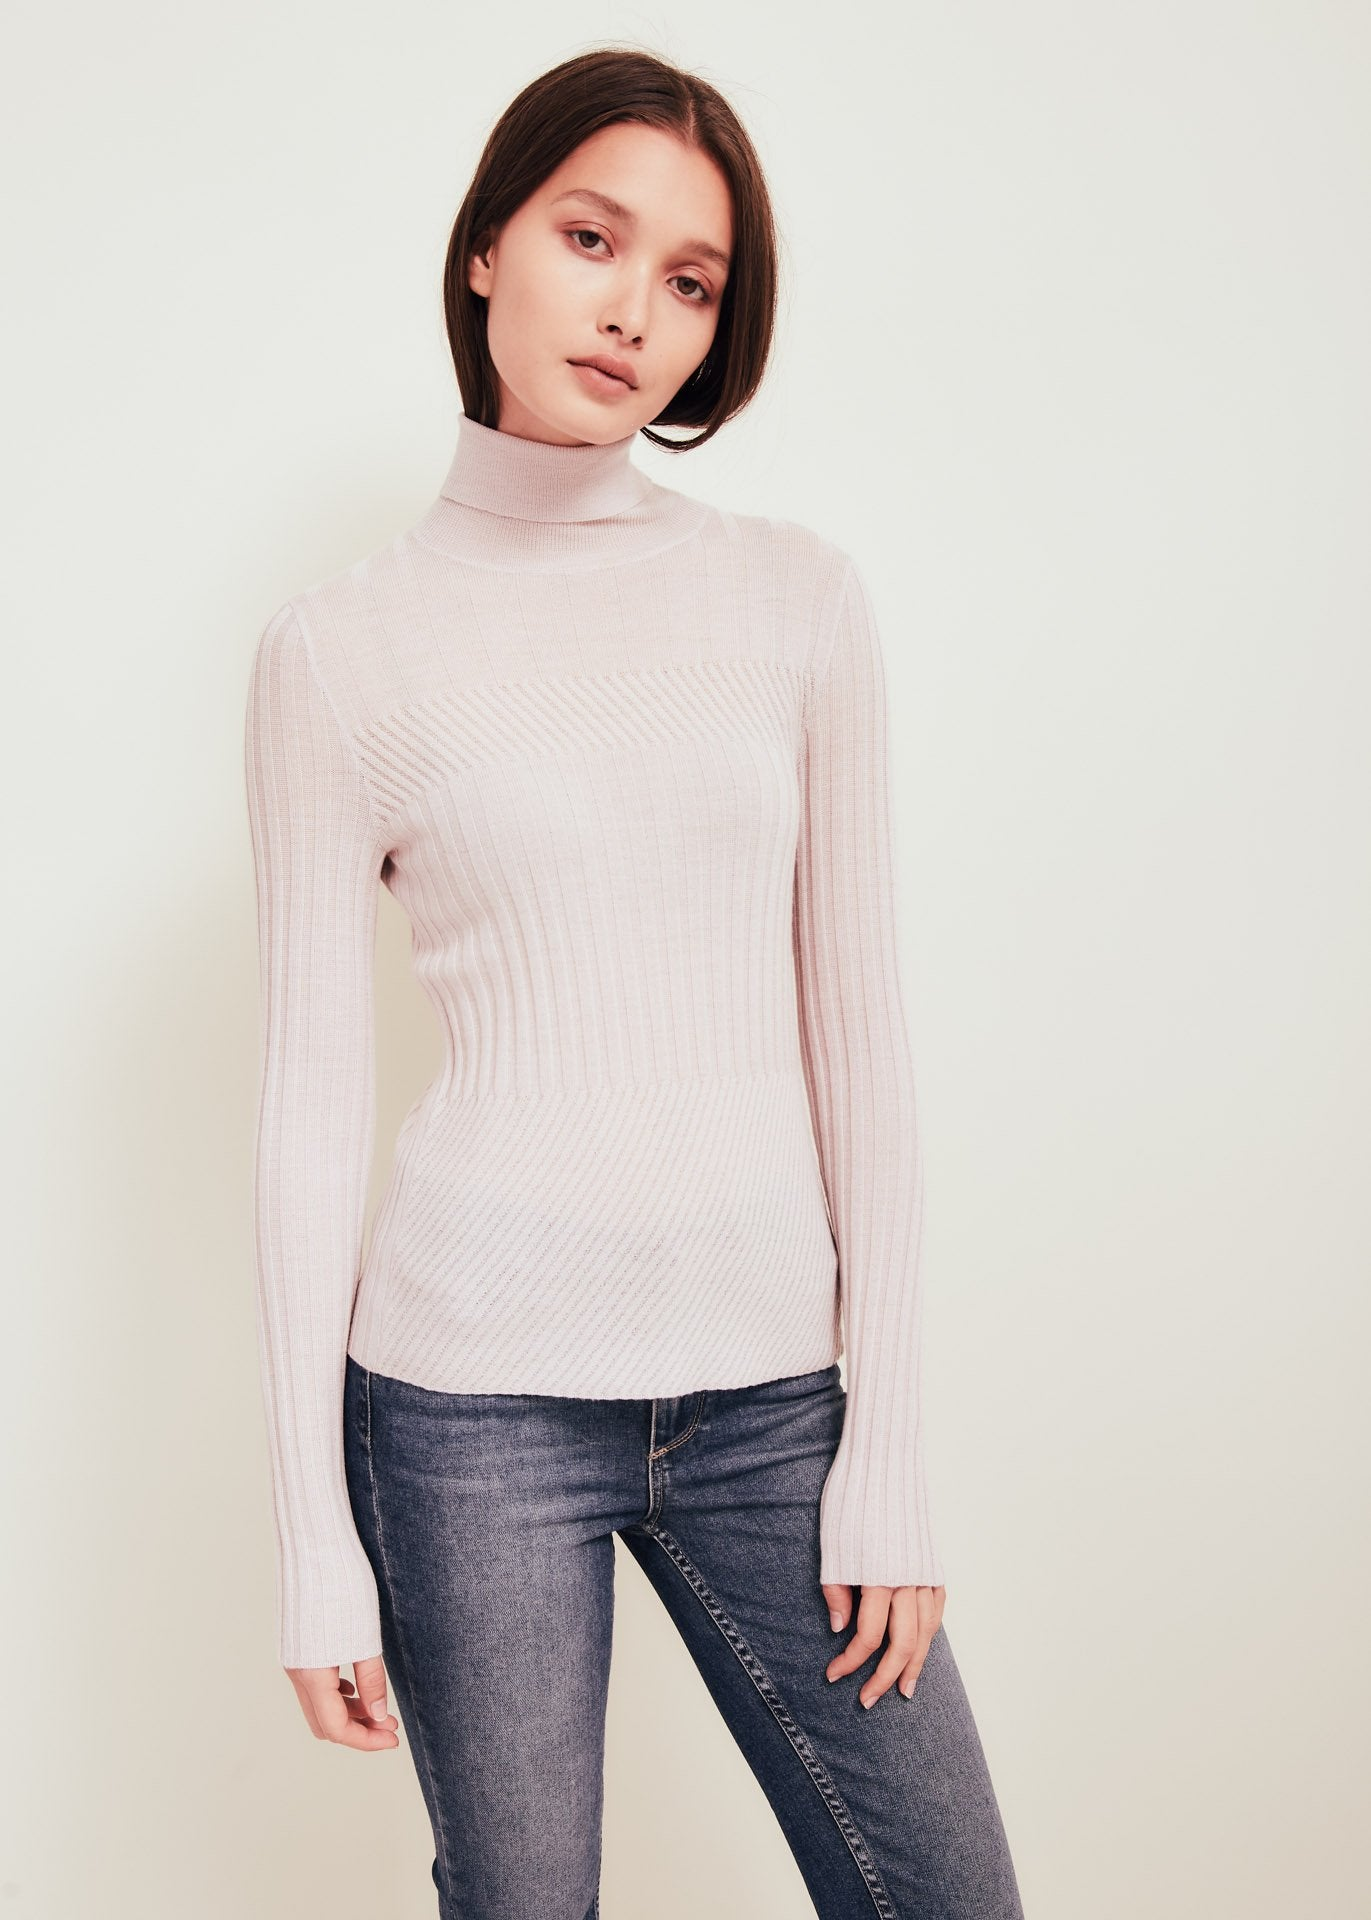 Pink Fine Merino Wool Turtleneck Sweater - Tori